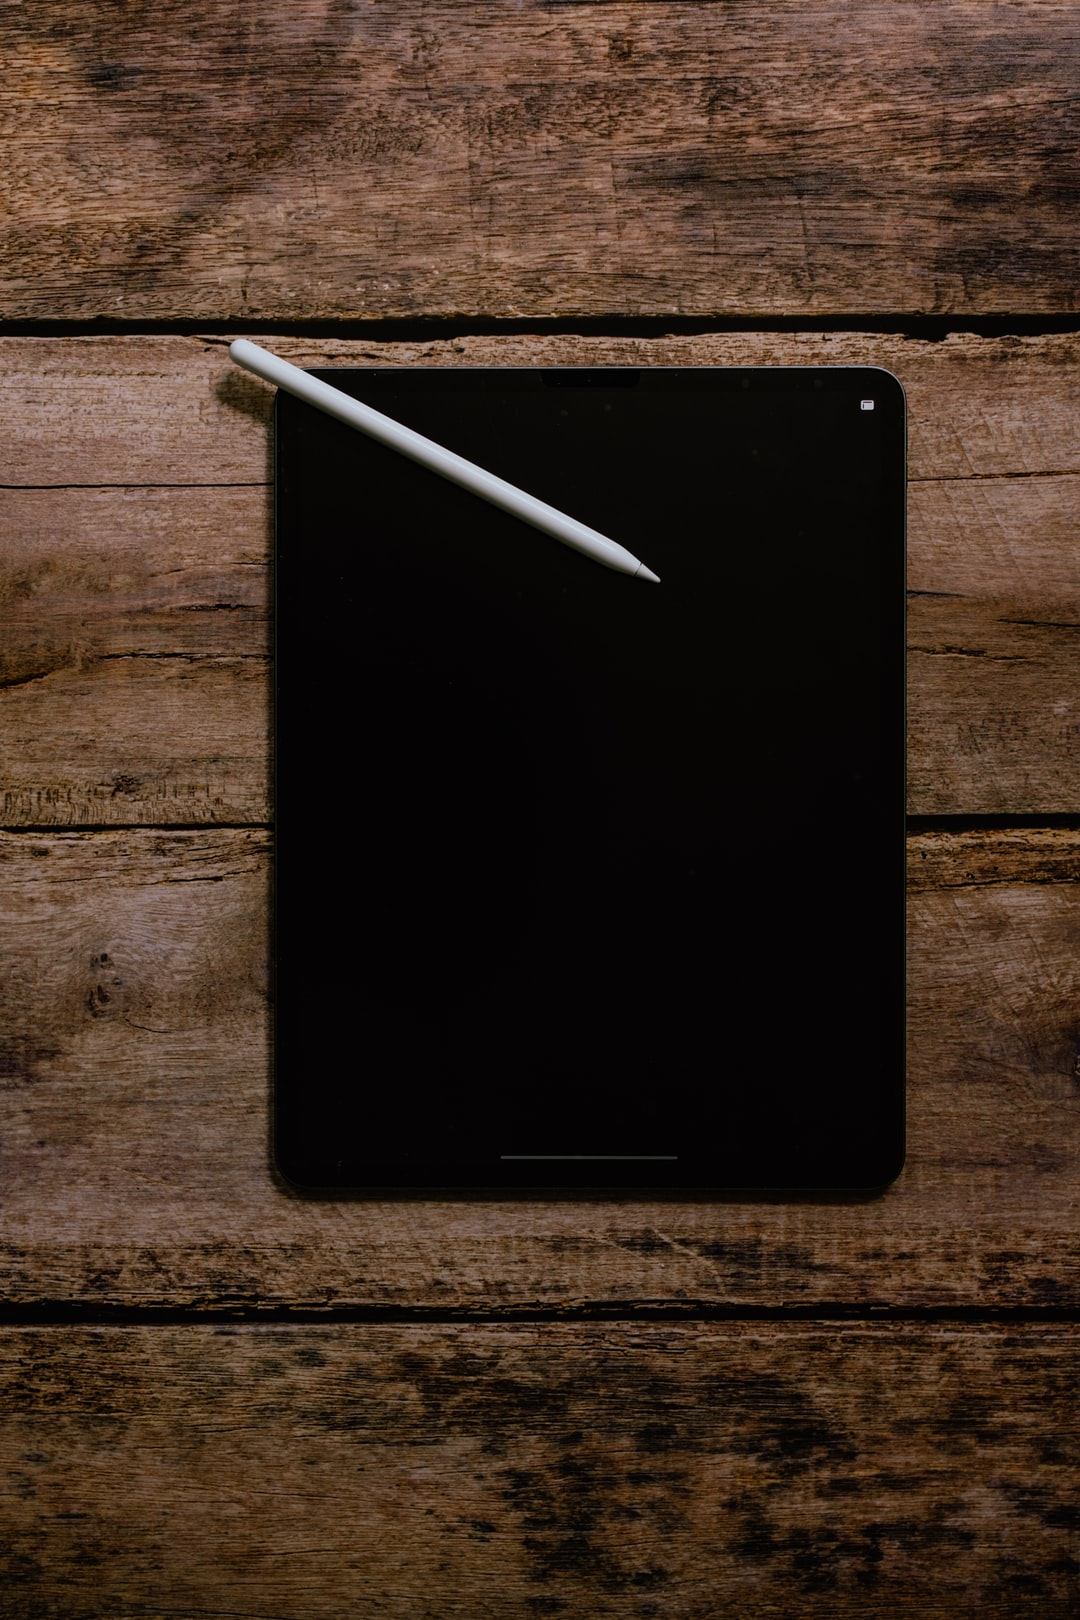 iPad pro with apple pencil and blank black screen